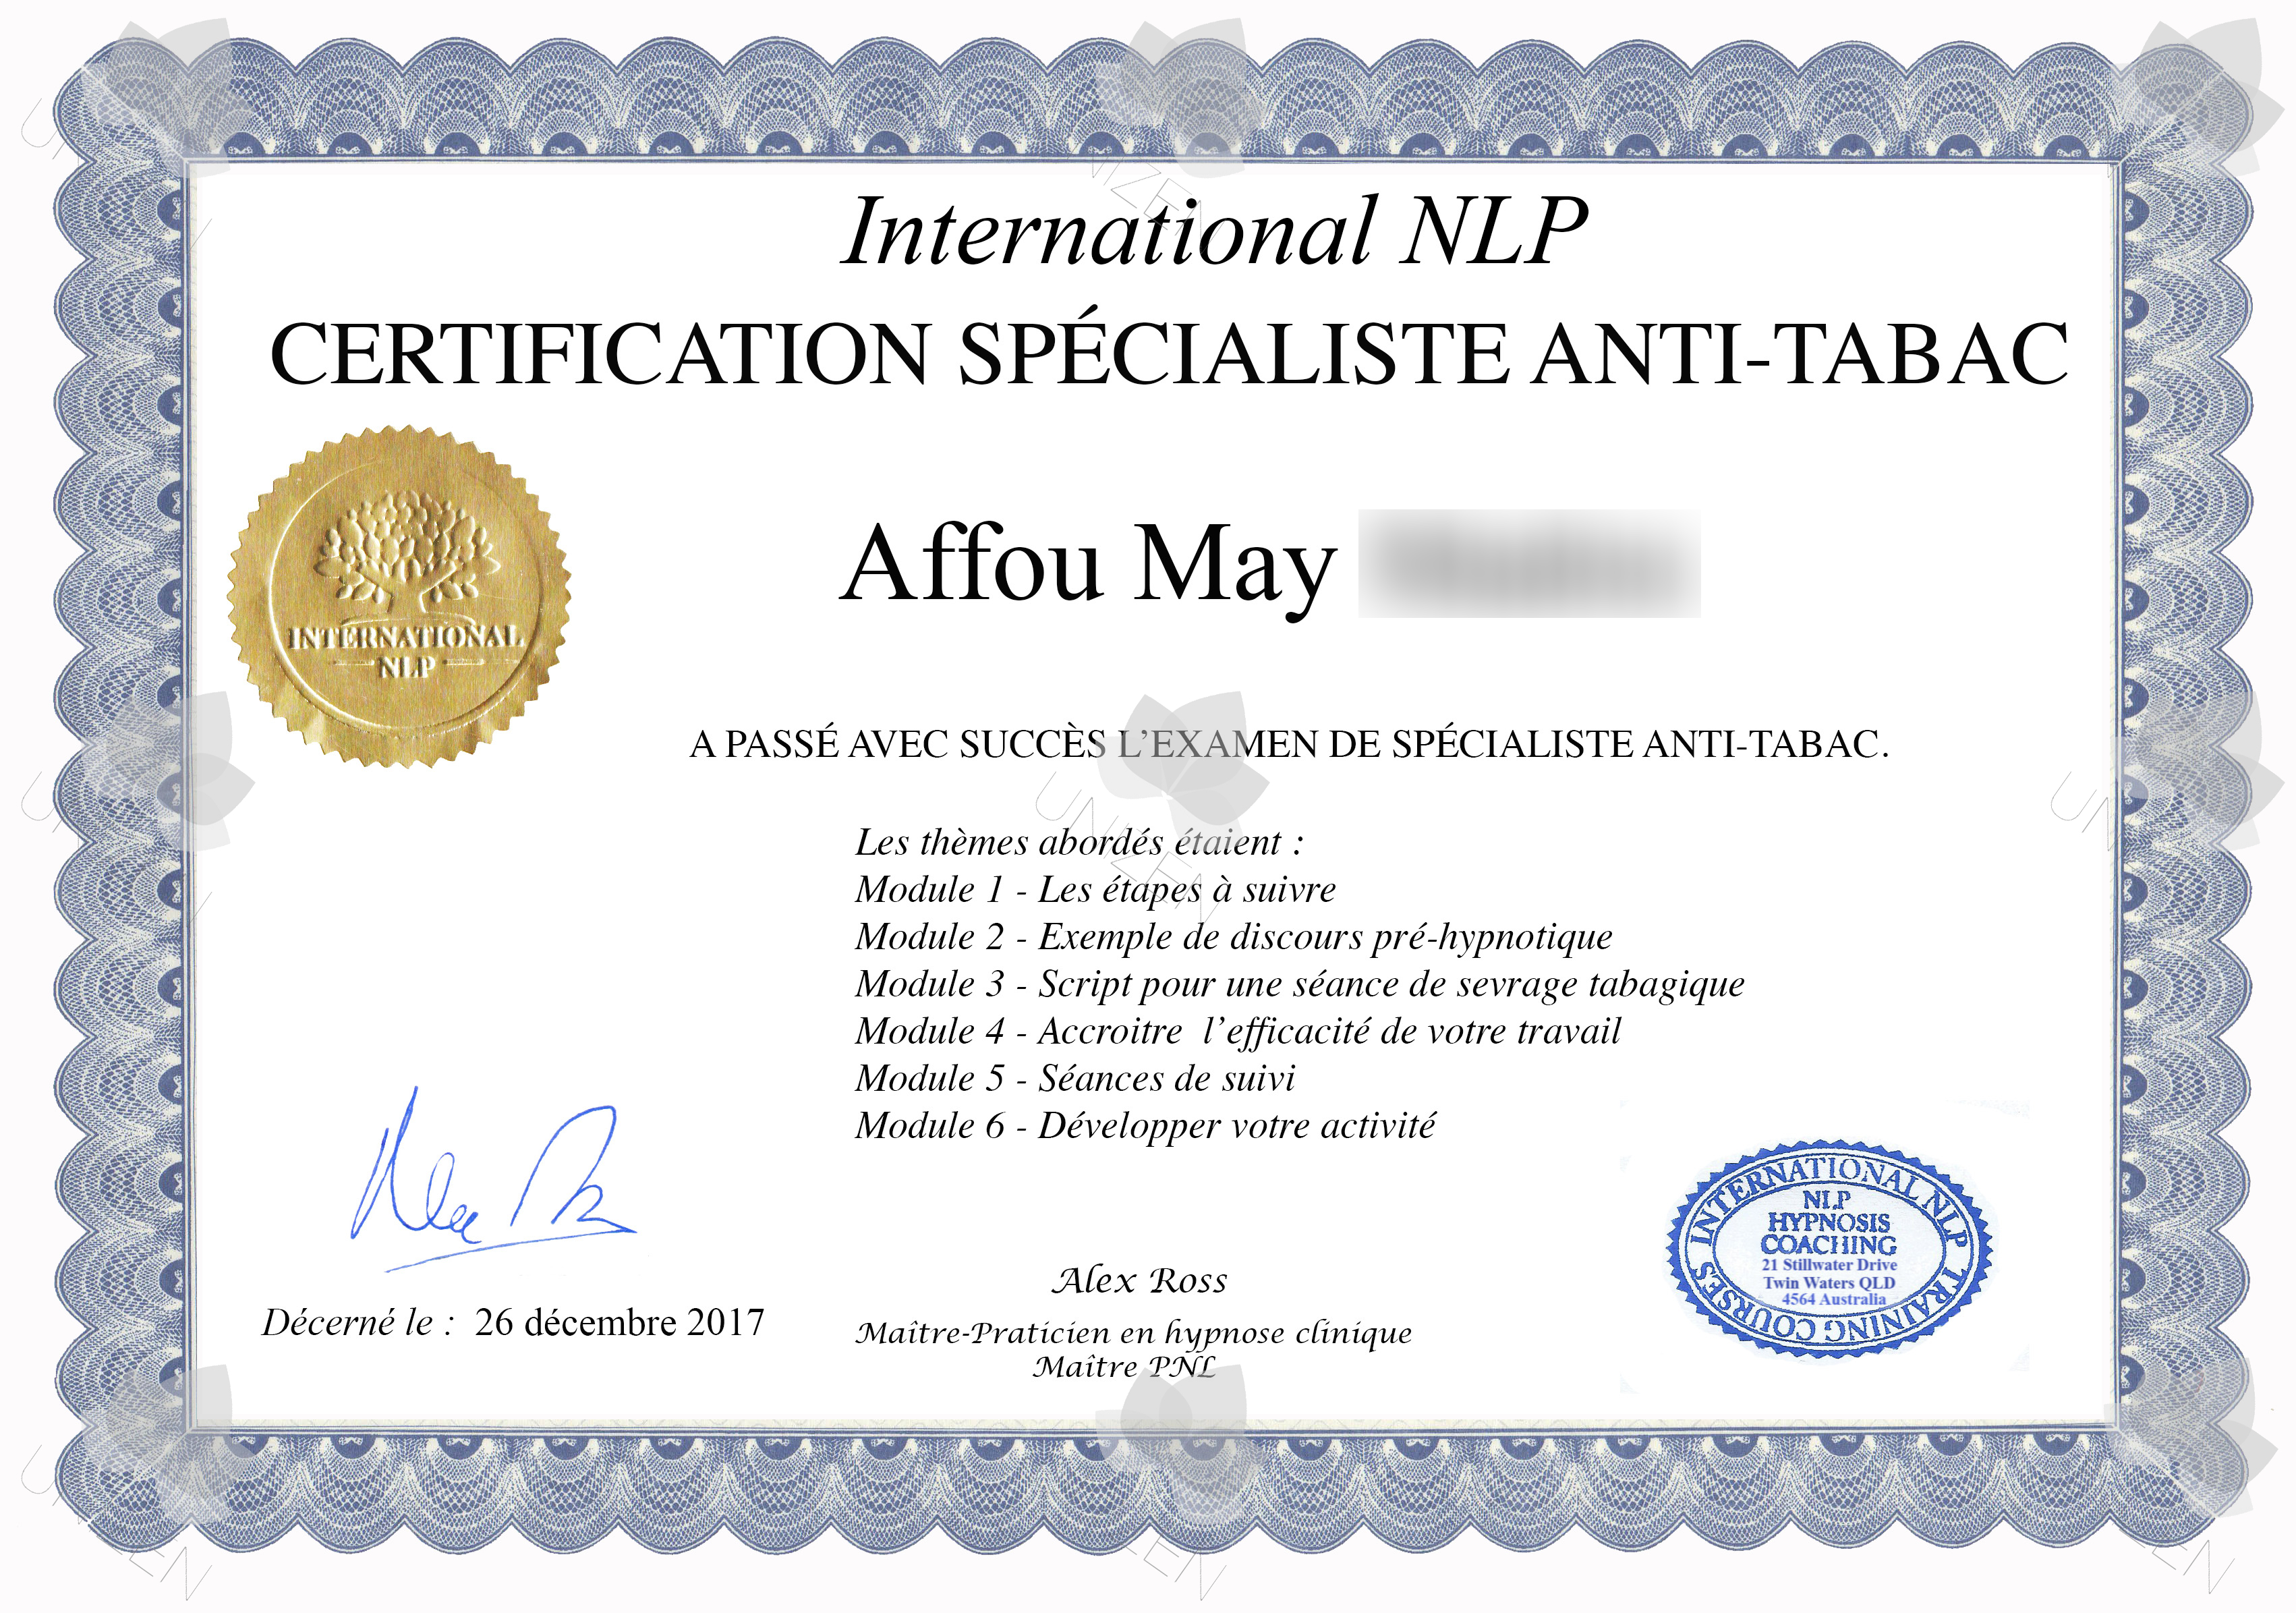 5bc34a10efefd_CERTIFICAT SPECIALISTE ANTI TABAC.jpg